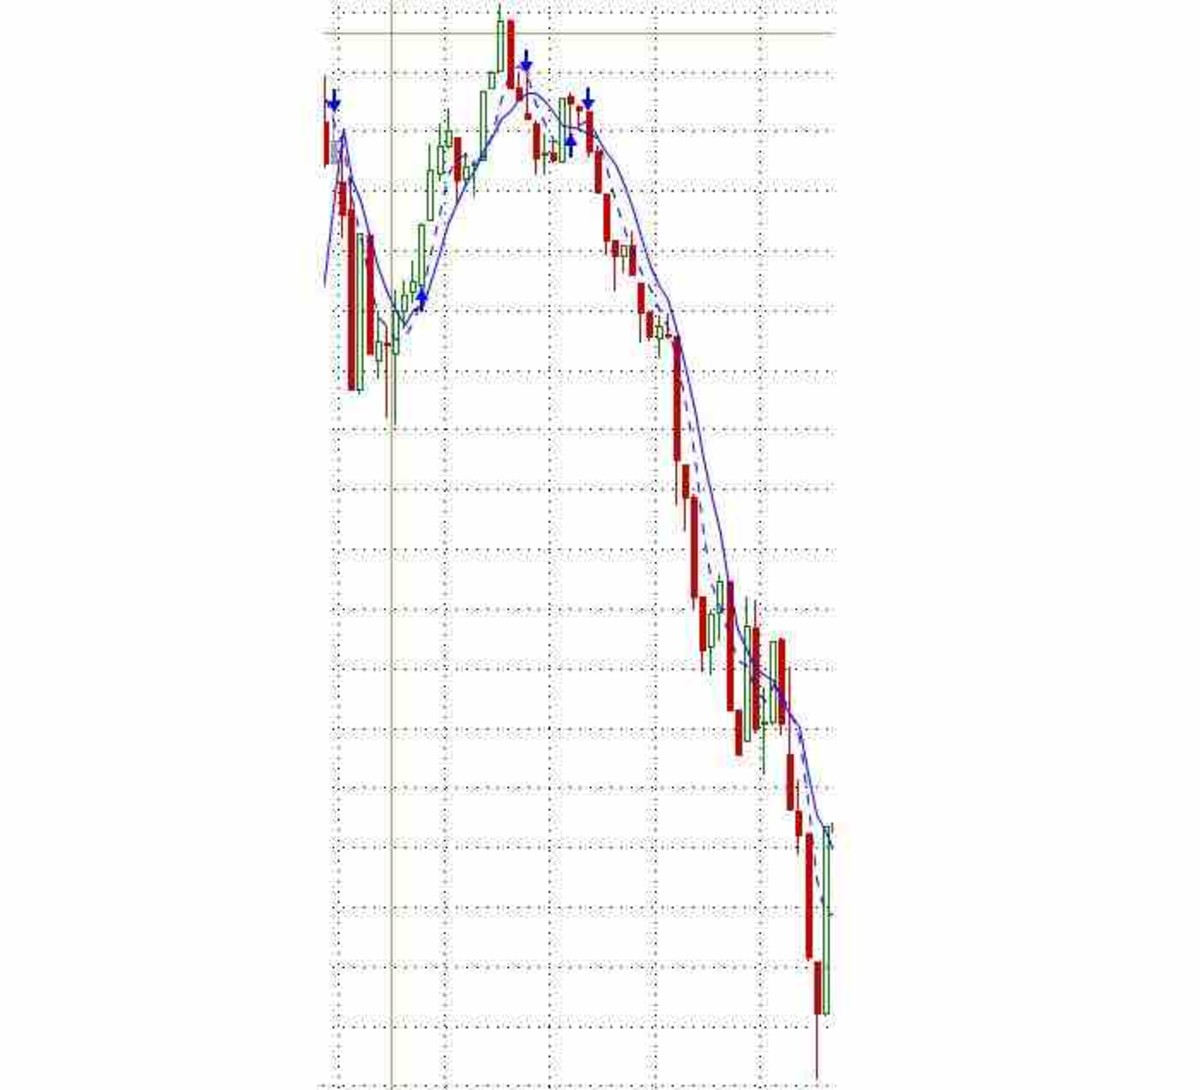 A three-hour steep decline of the S&P.